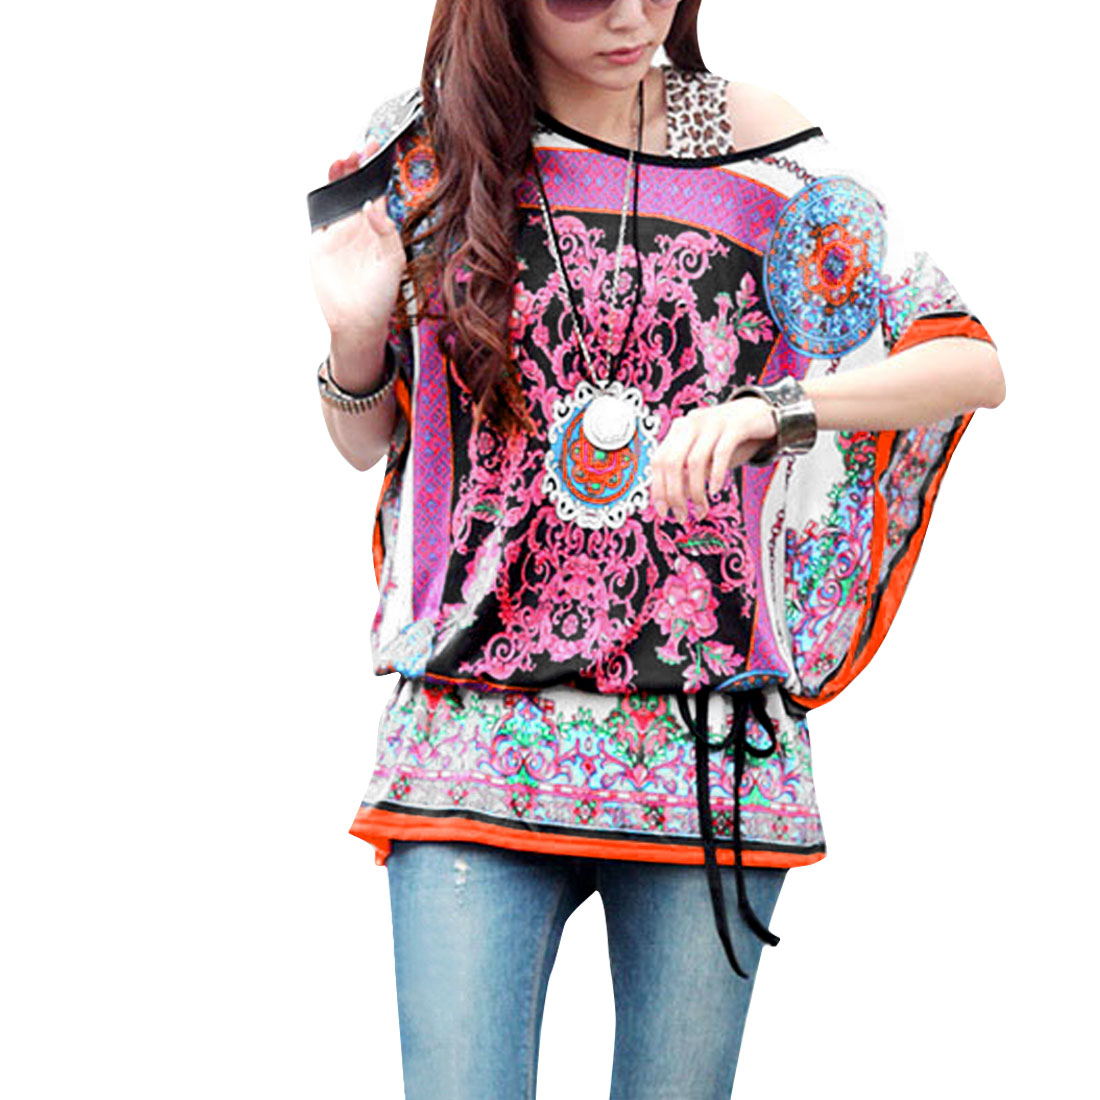 5889 Women Round Neck Batwing Sleeve Ethnic Pattern Tunic Shirt Multicolor XL/L (US 12)